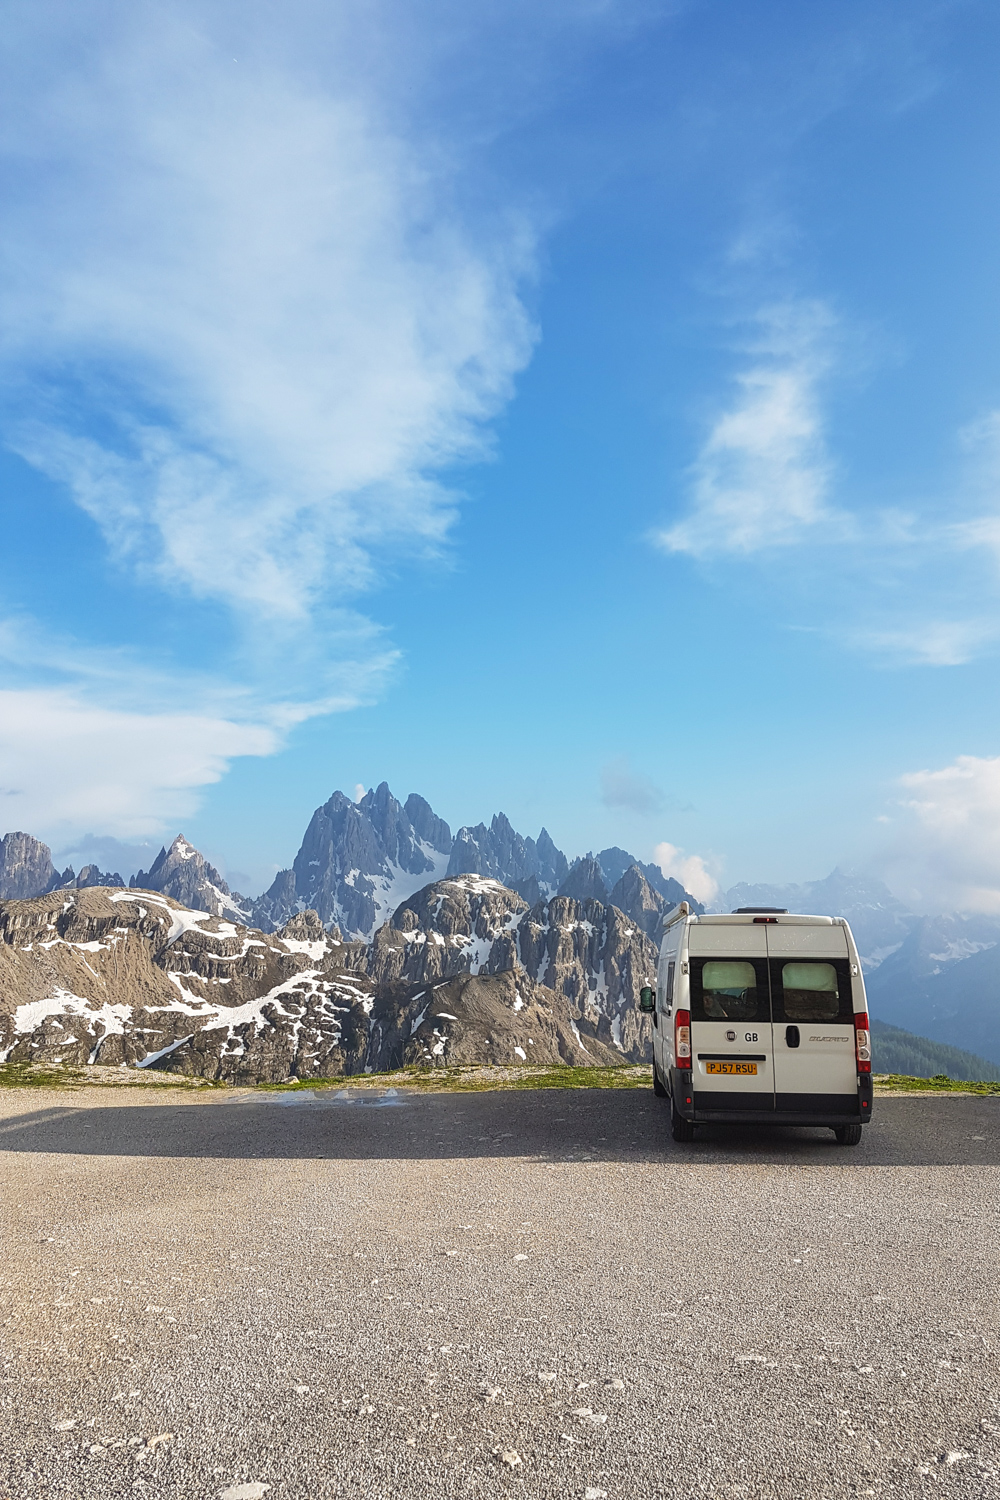 Camping at Tre Cime di Lavaredo in The Dolomites